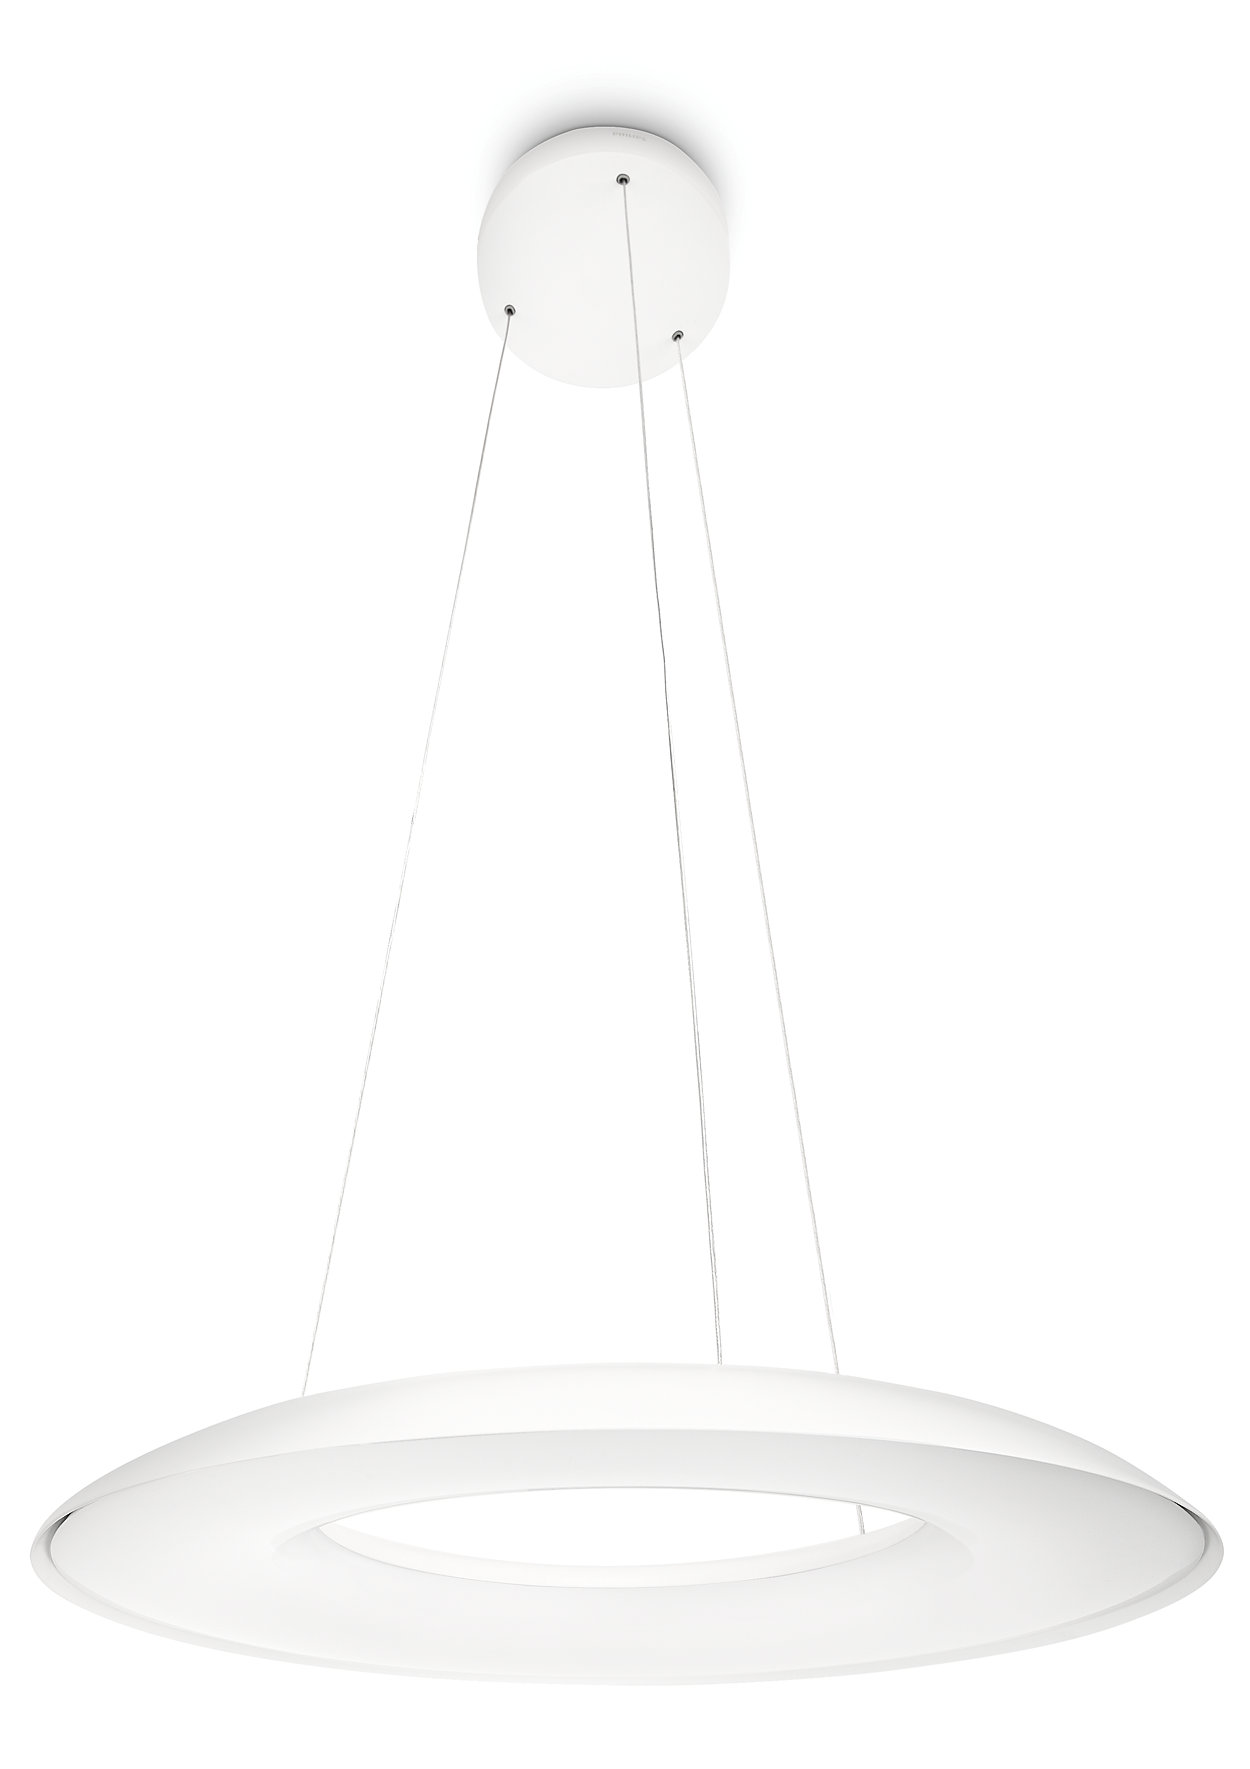 light for a relaxing home